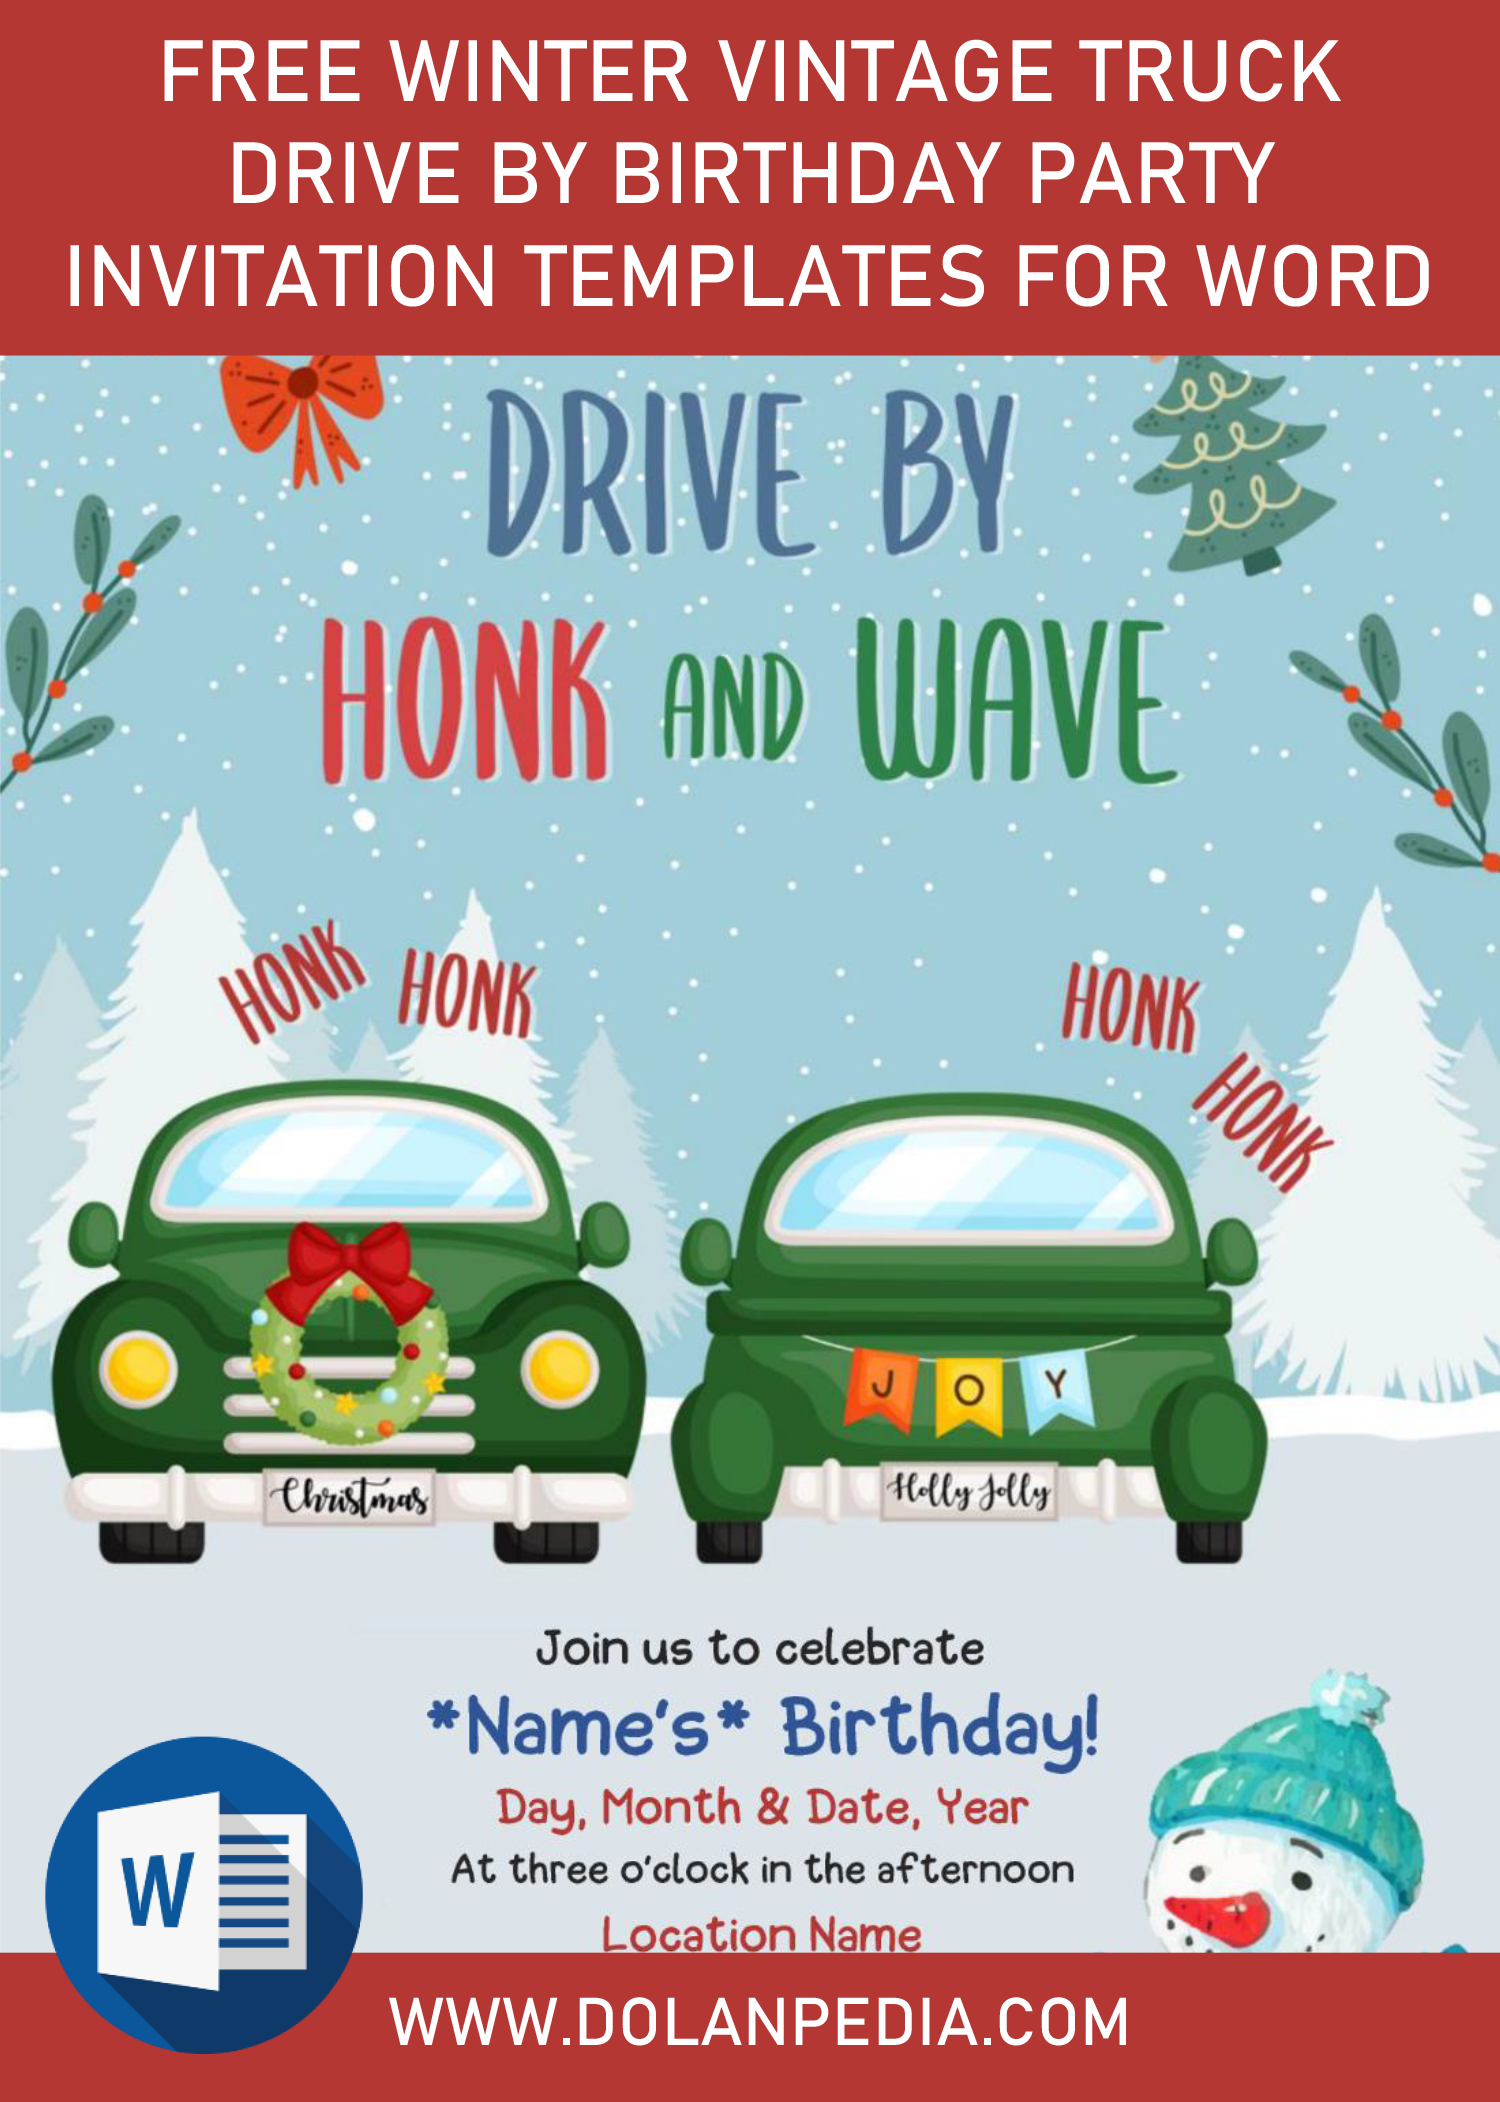 Free Winter Vintage Truck Drive By Birthday Party Invitation Templates For Word Birthday Party Invitation Templates Party Invite Template Invitation Template